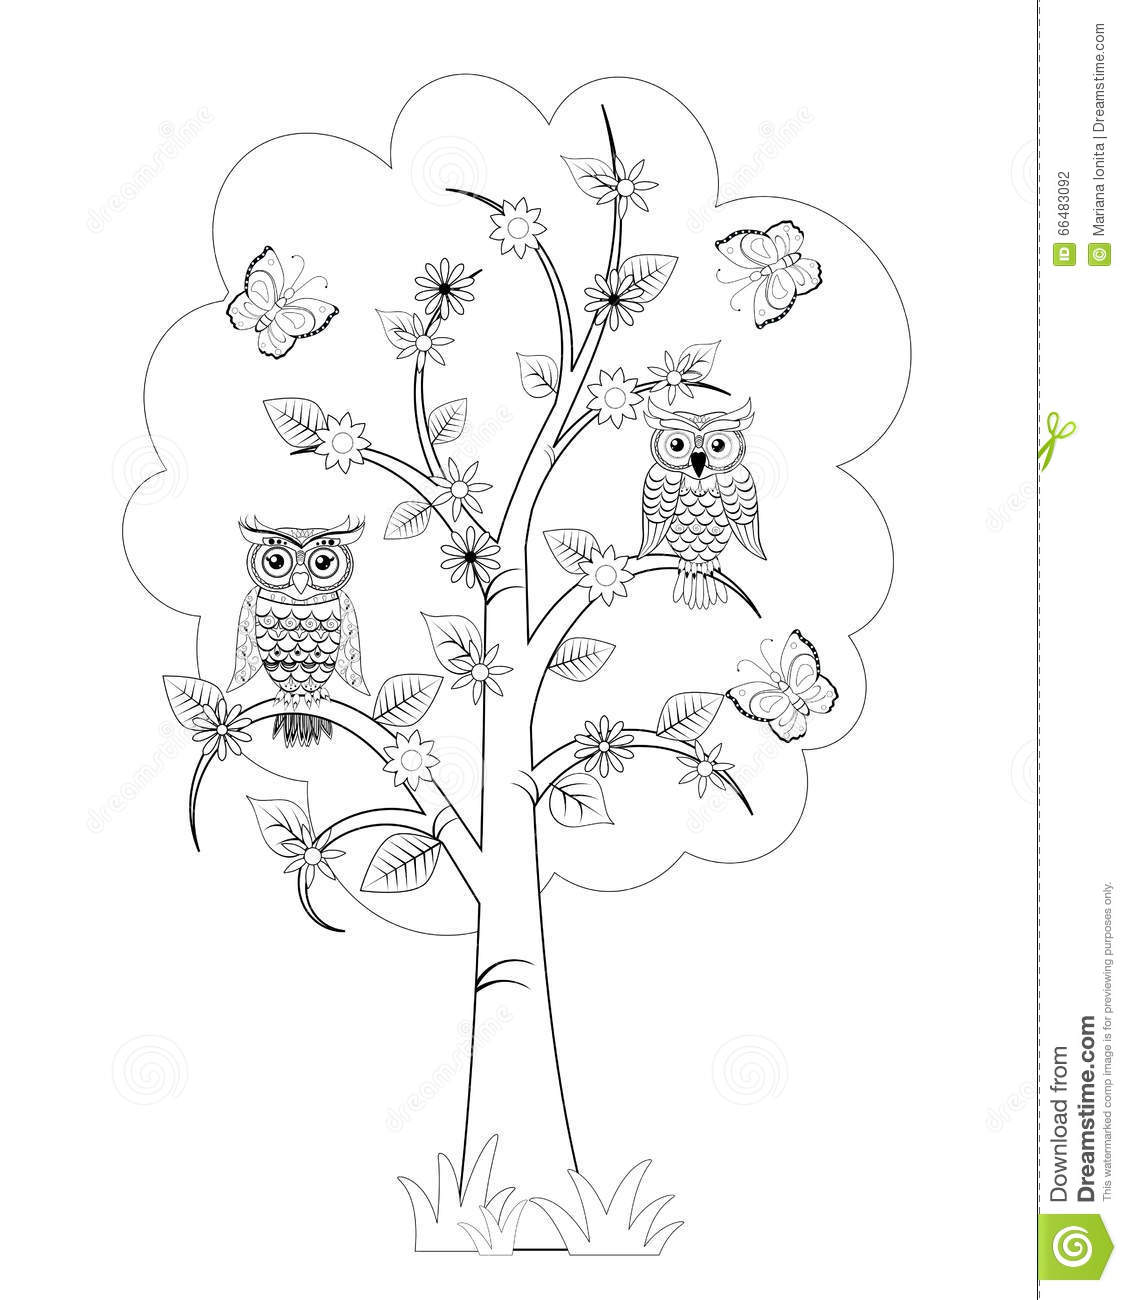 Coloring Page With Owls Stock Illustration Illustration Of Tree